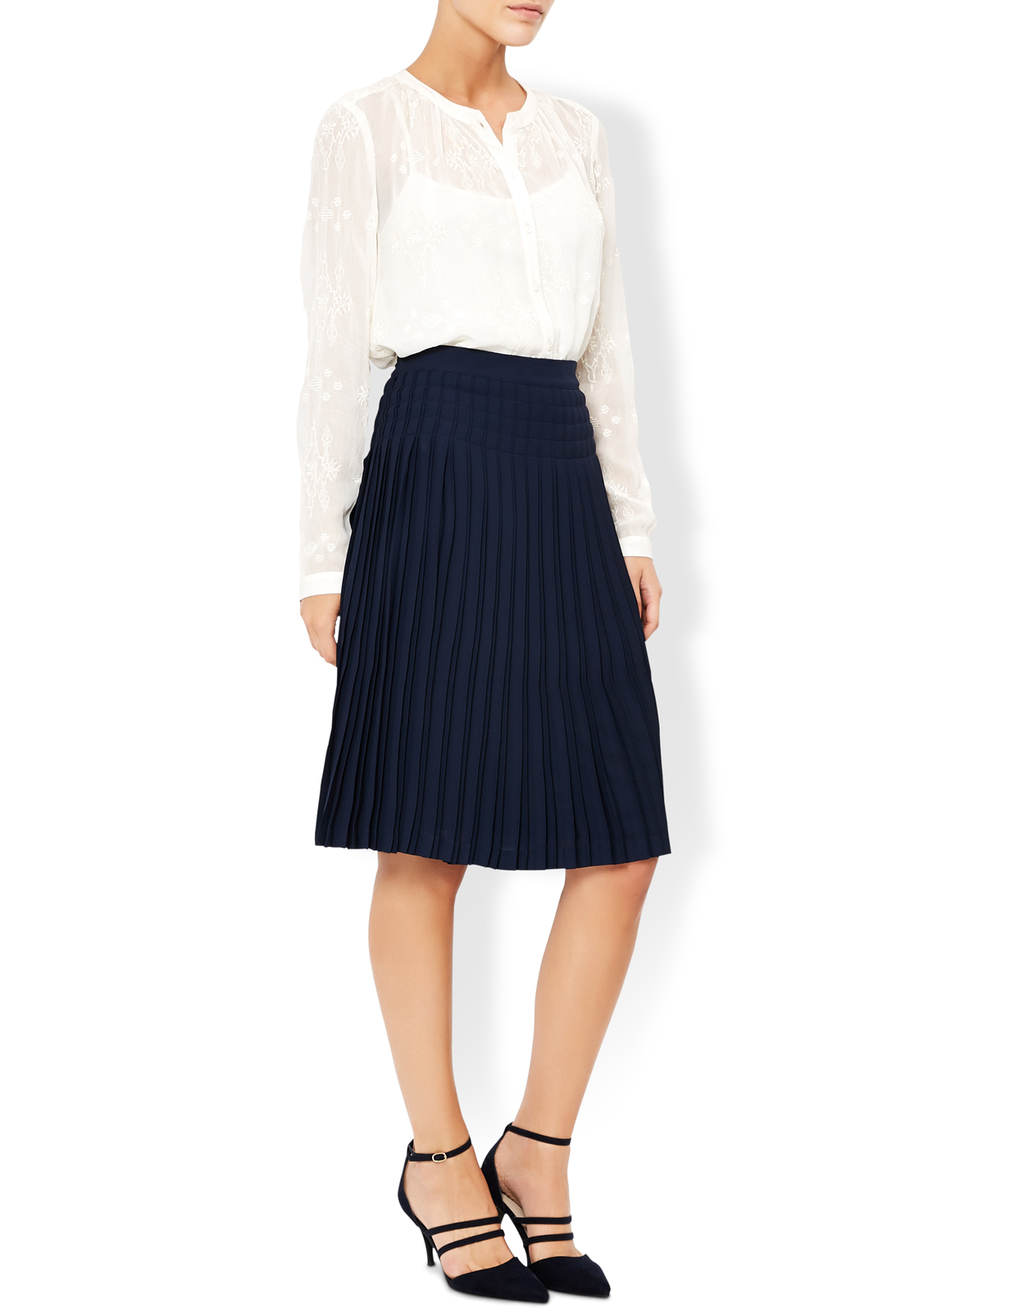 Becca Pleat Skirt - pattern: plain; fit: body skimming; style: pleated; waist: high rise; predominant colour: navy; occasions: work; length: on the knee; fibres: polyester/polyamide - 100%; pattern type: fabric; texture group: other - light to midweight; wardrobe: basic; season: a/w 2016